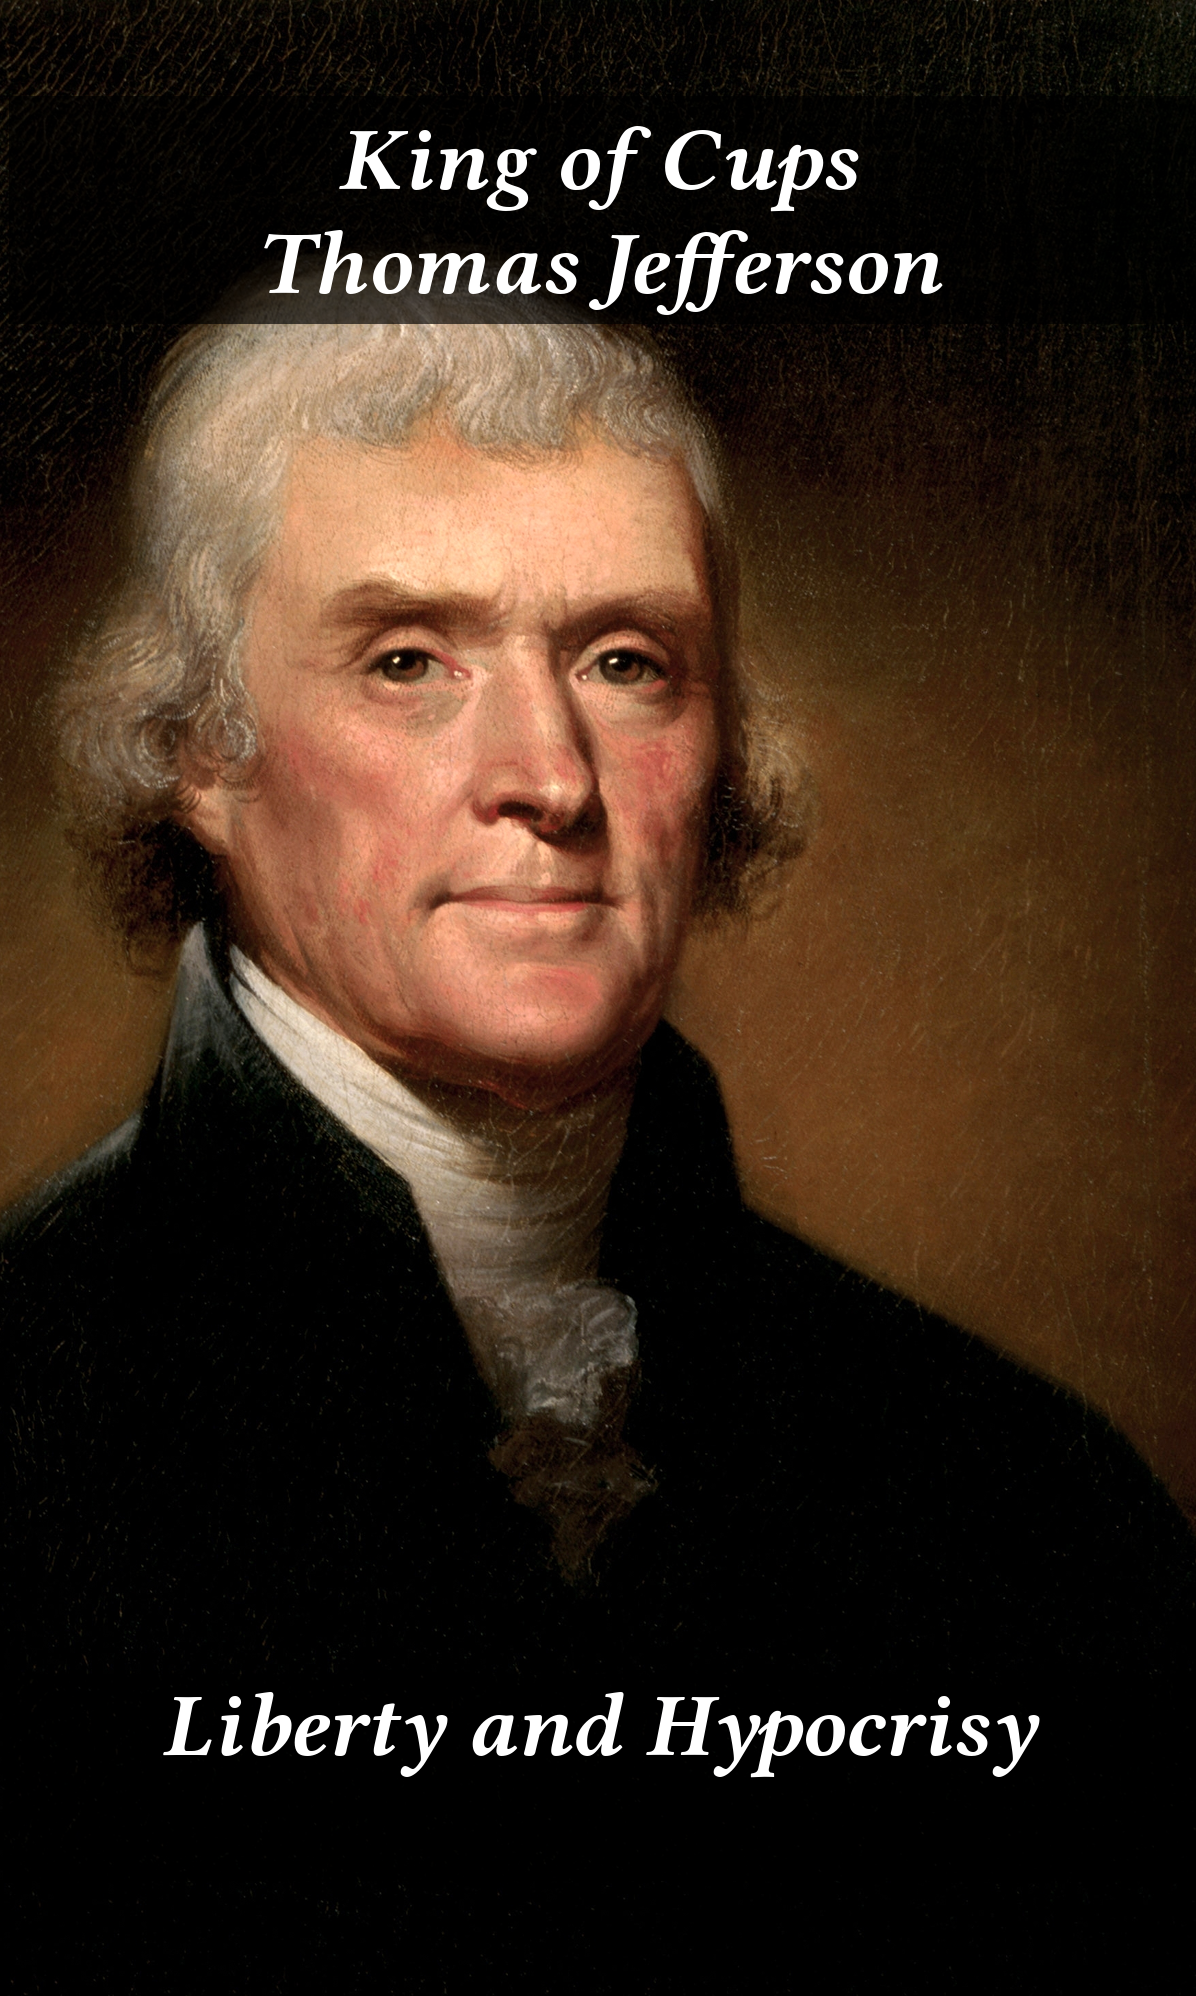 Thomas Jefferson As The King Of Cups